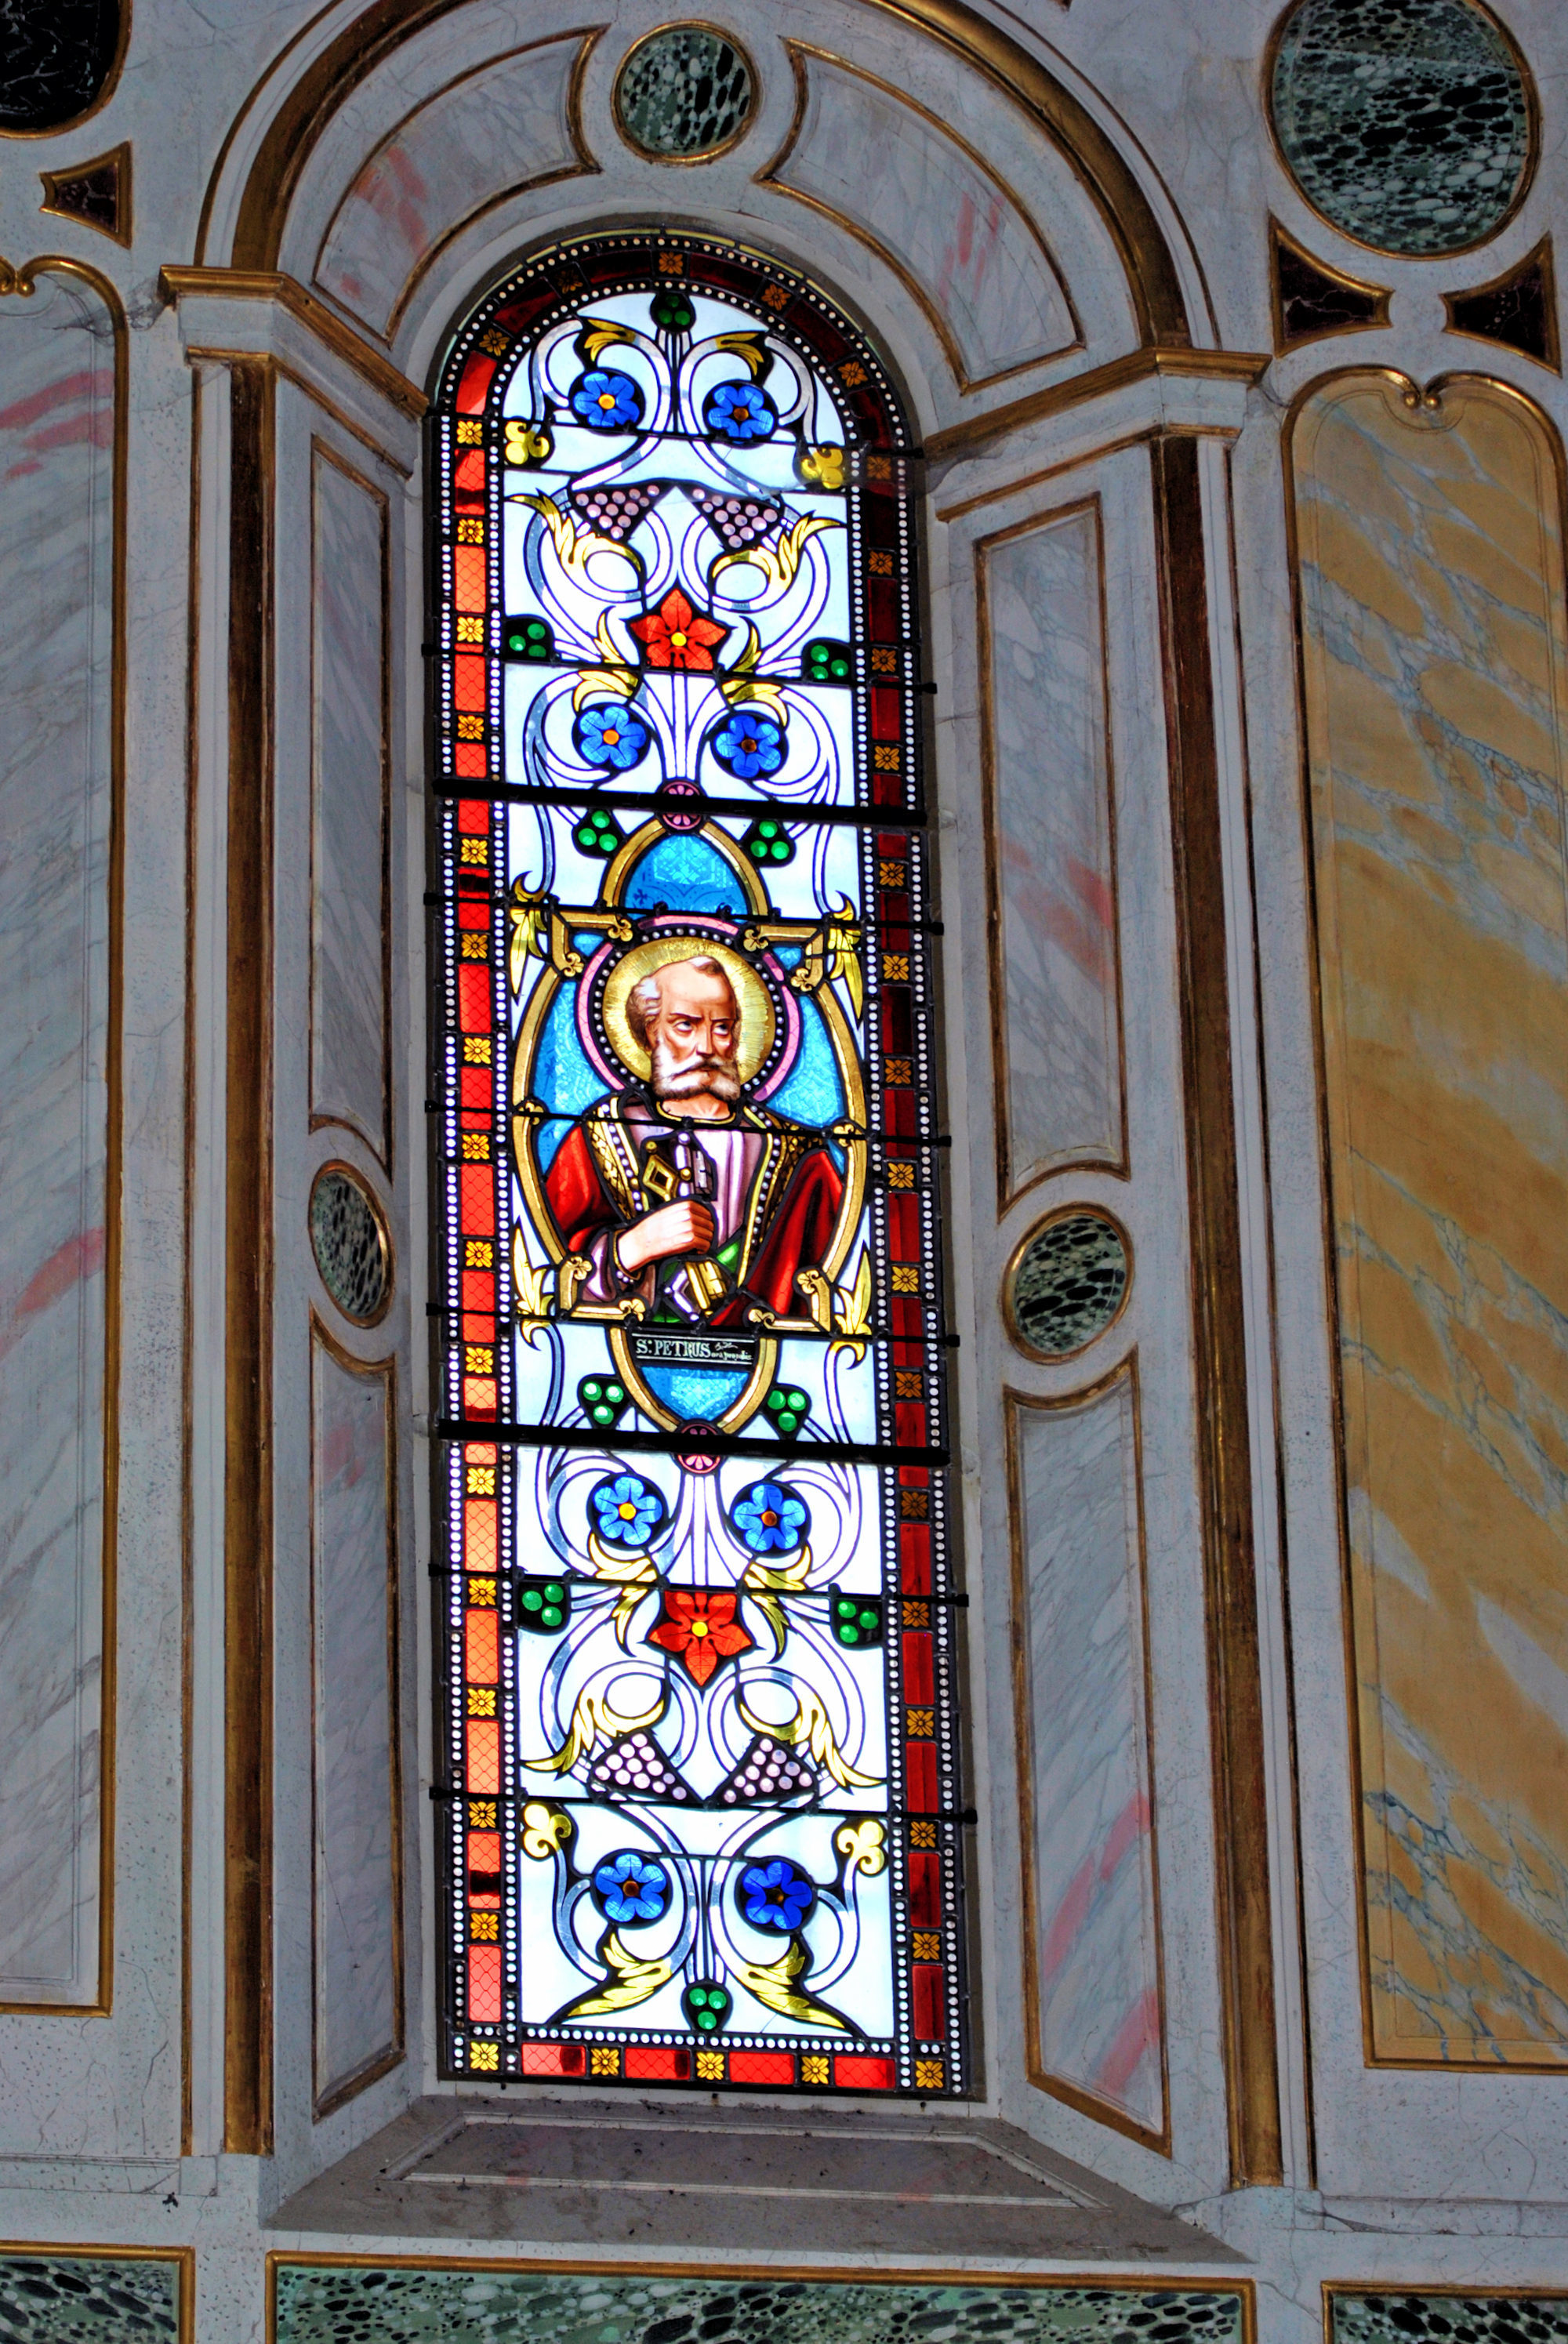 Vitrail - Stained glass window 14